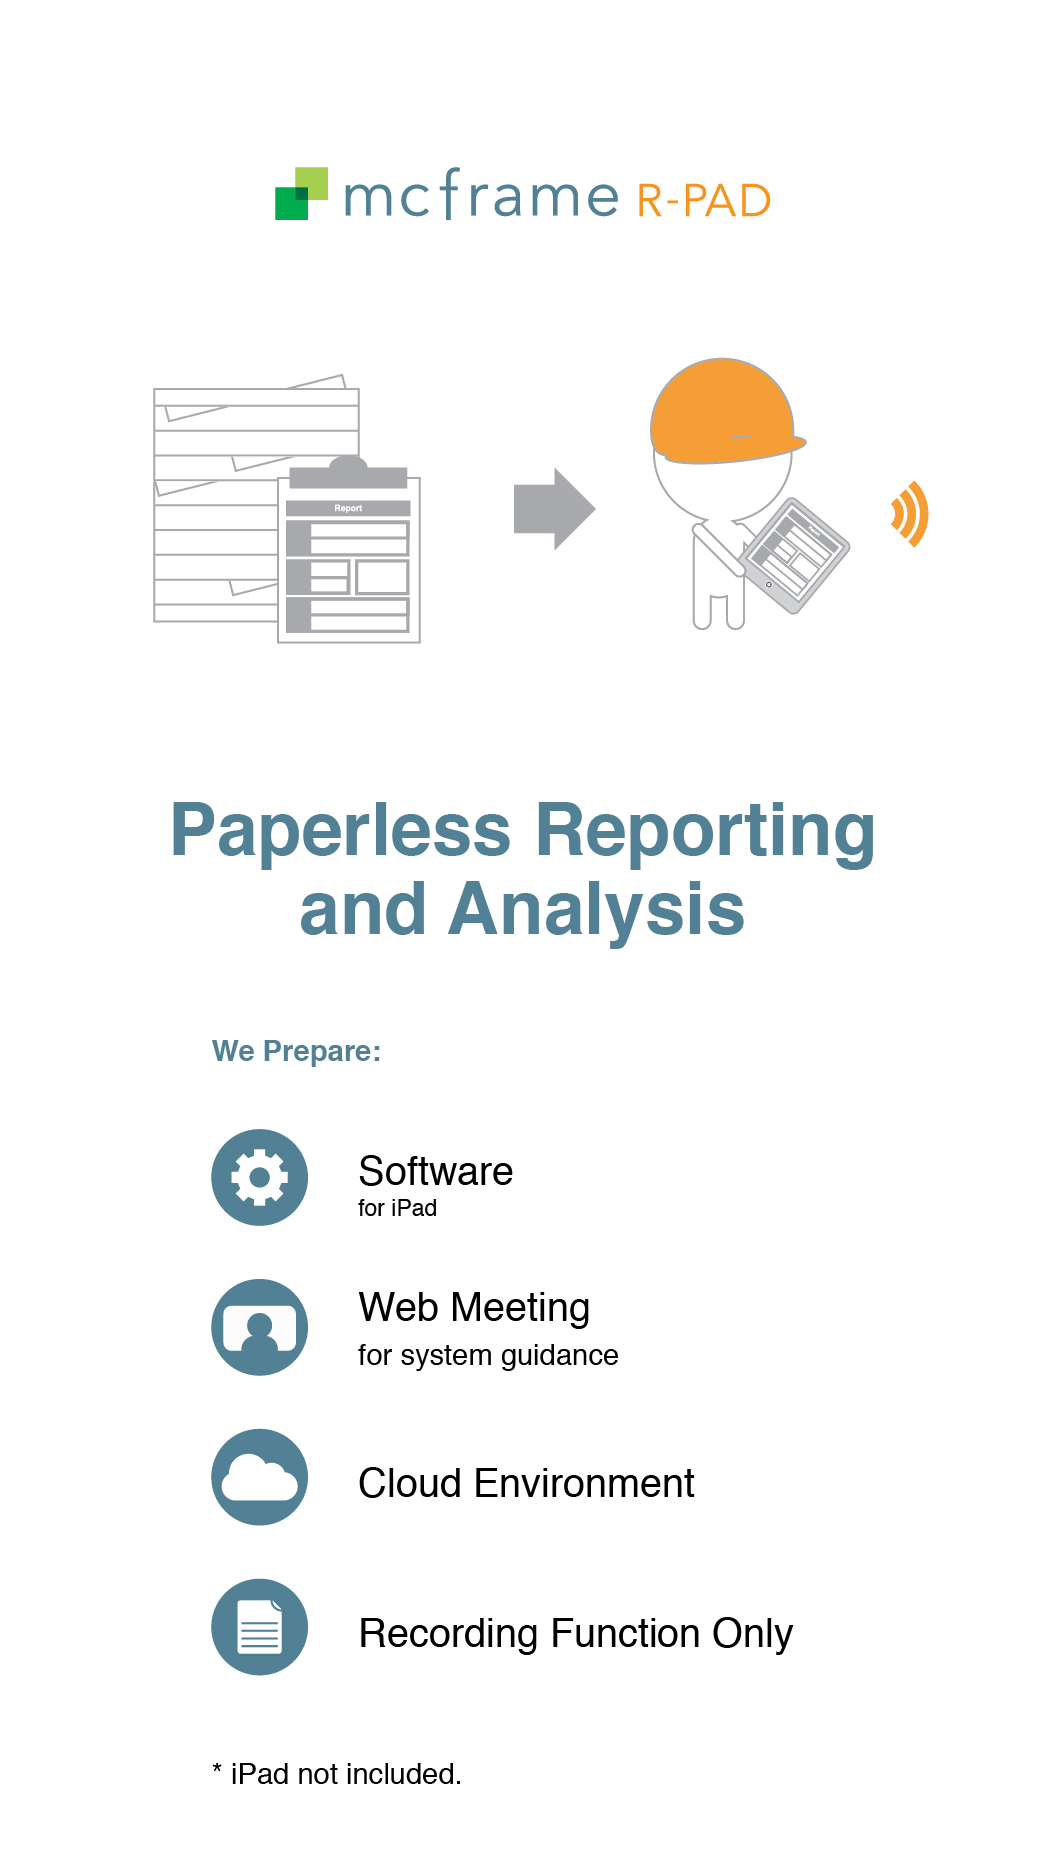 Trial for mcframe R-PAD Paperless Reporting and Analysis